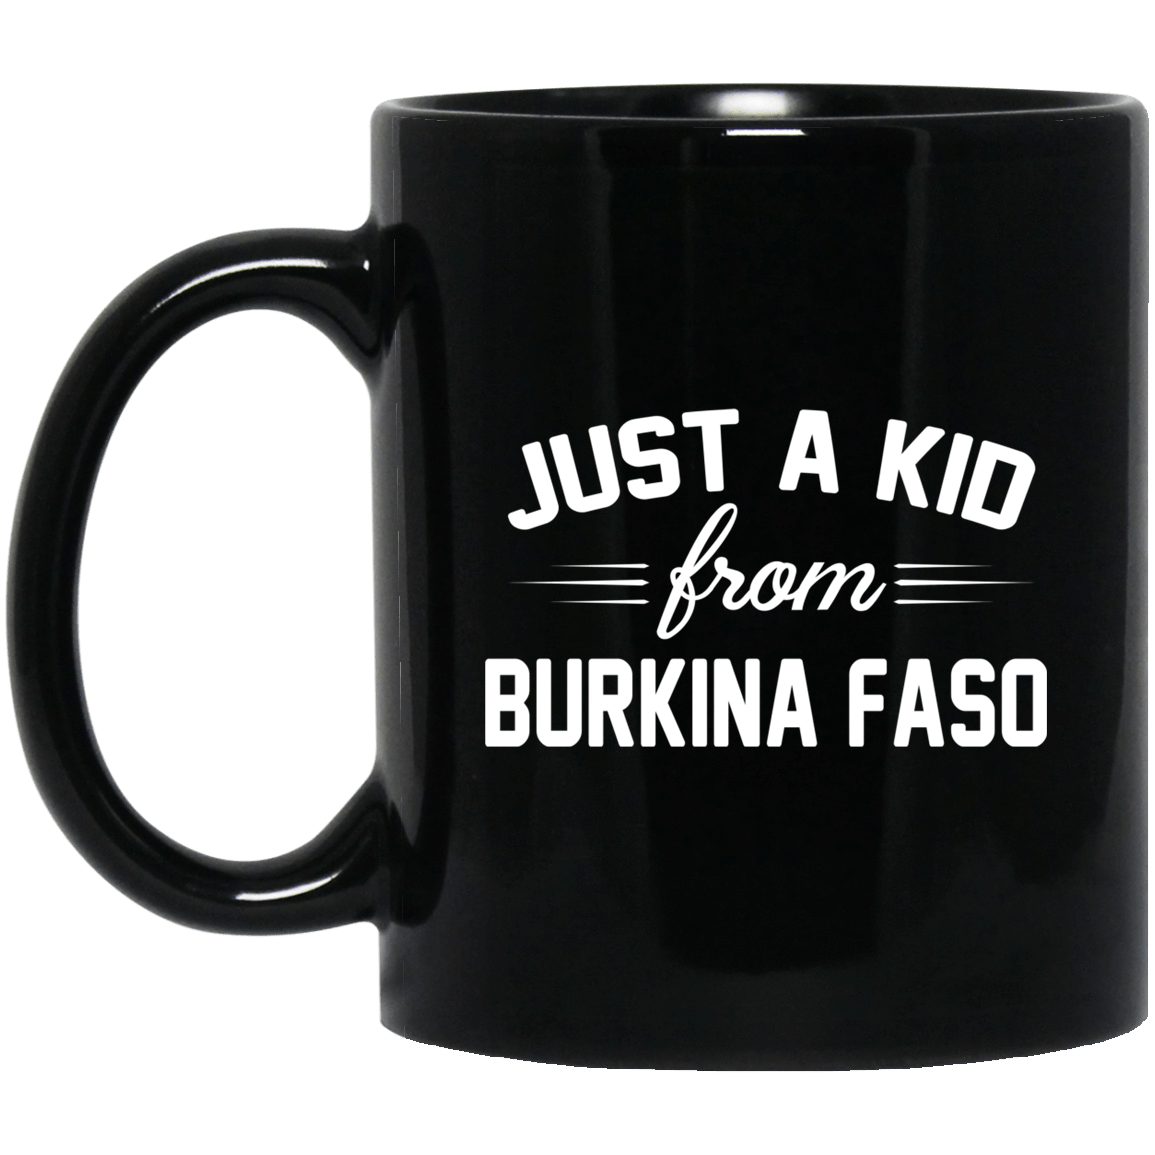 Just A Kid Store | Burkina Faso Mug 1065-10181-72111291-49307 - Tee Ript